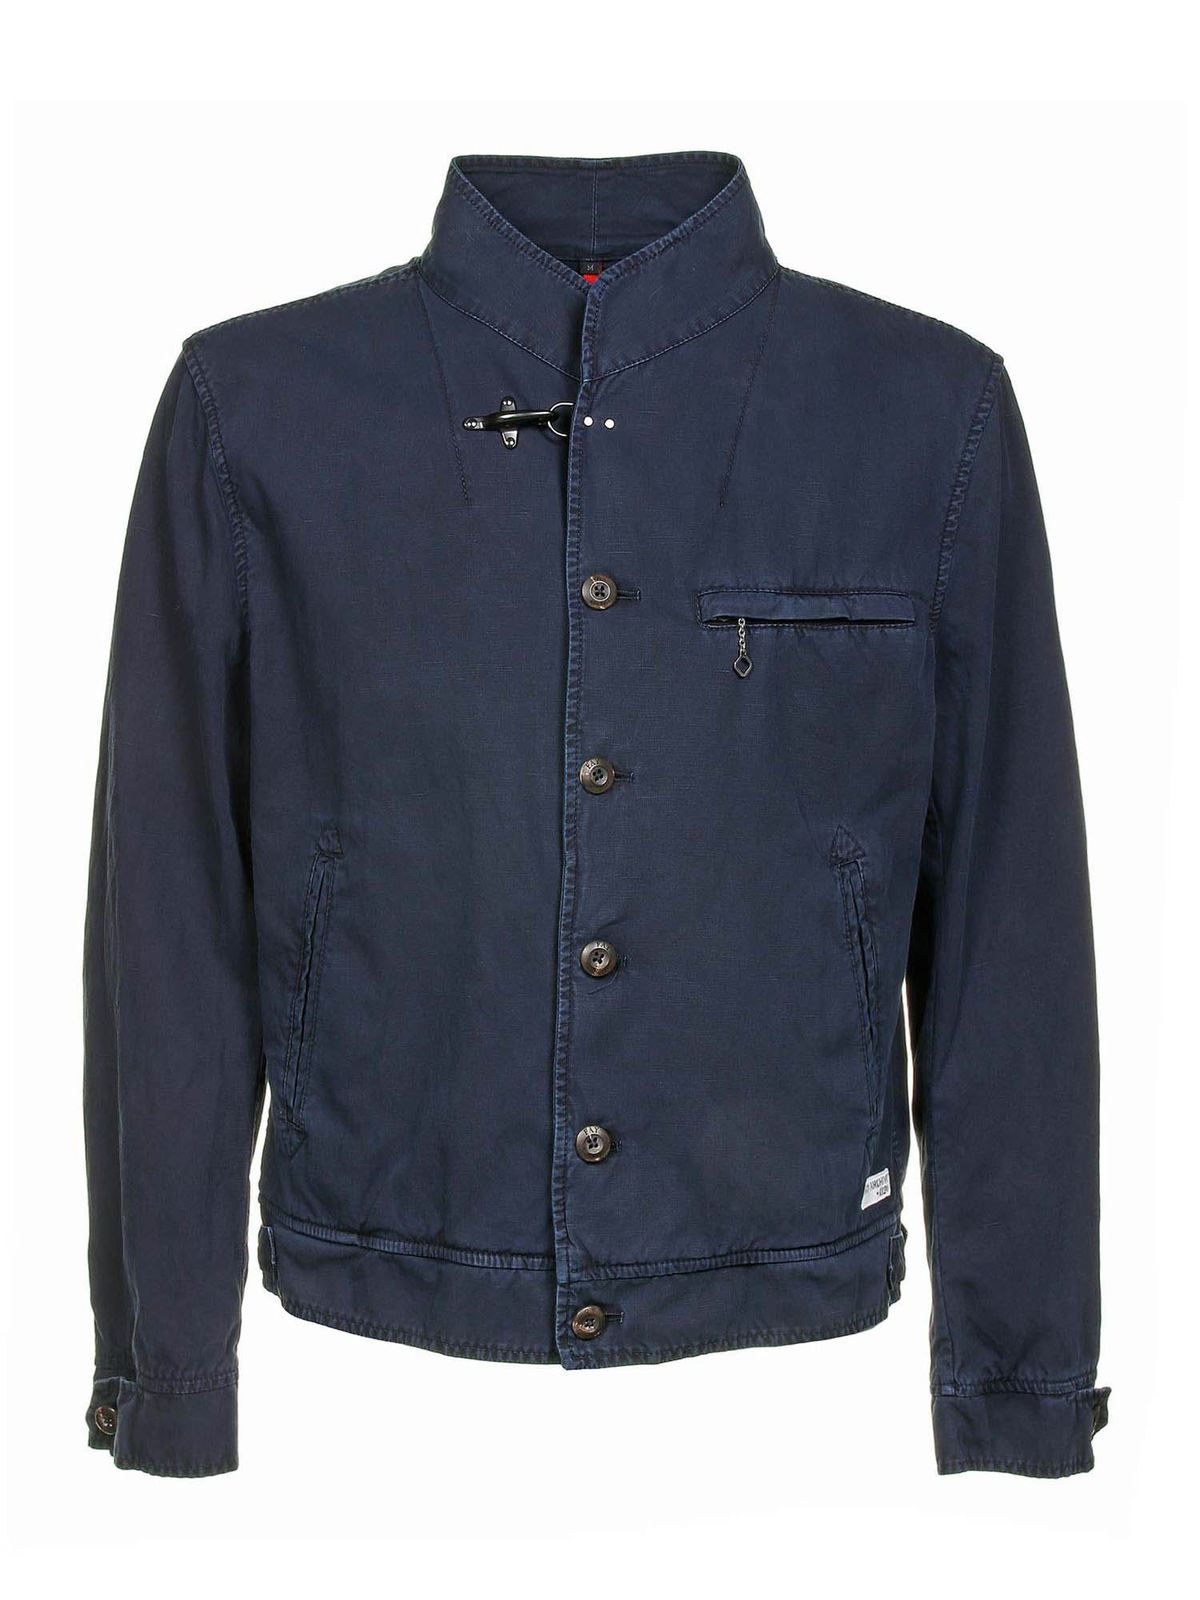 Fay Cottons FAY ARCHIVE WORK JACKET IN BLUE